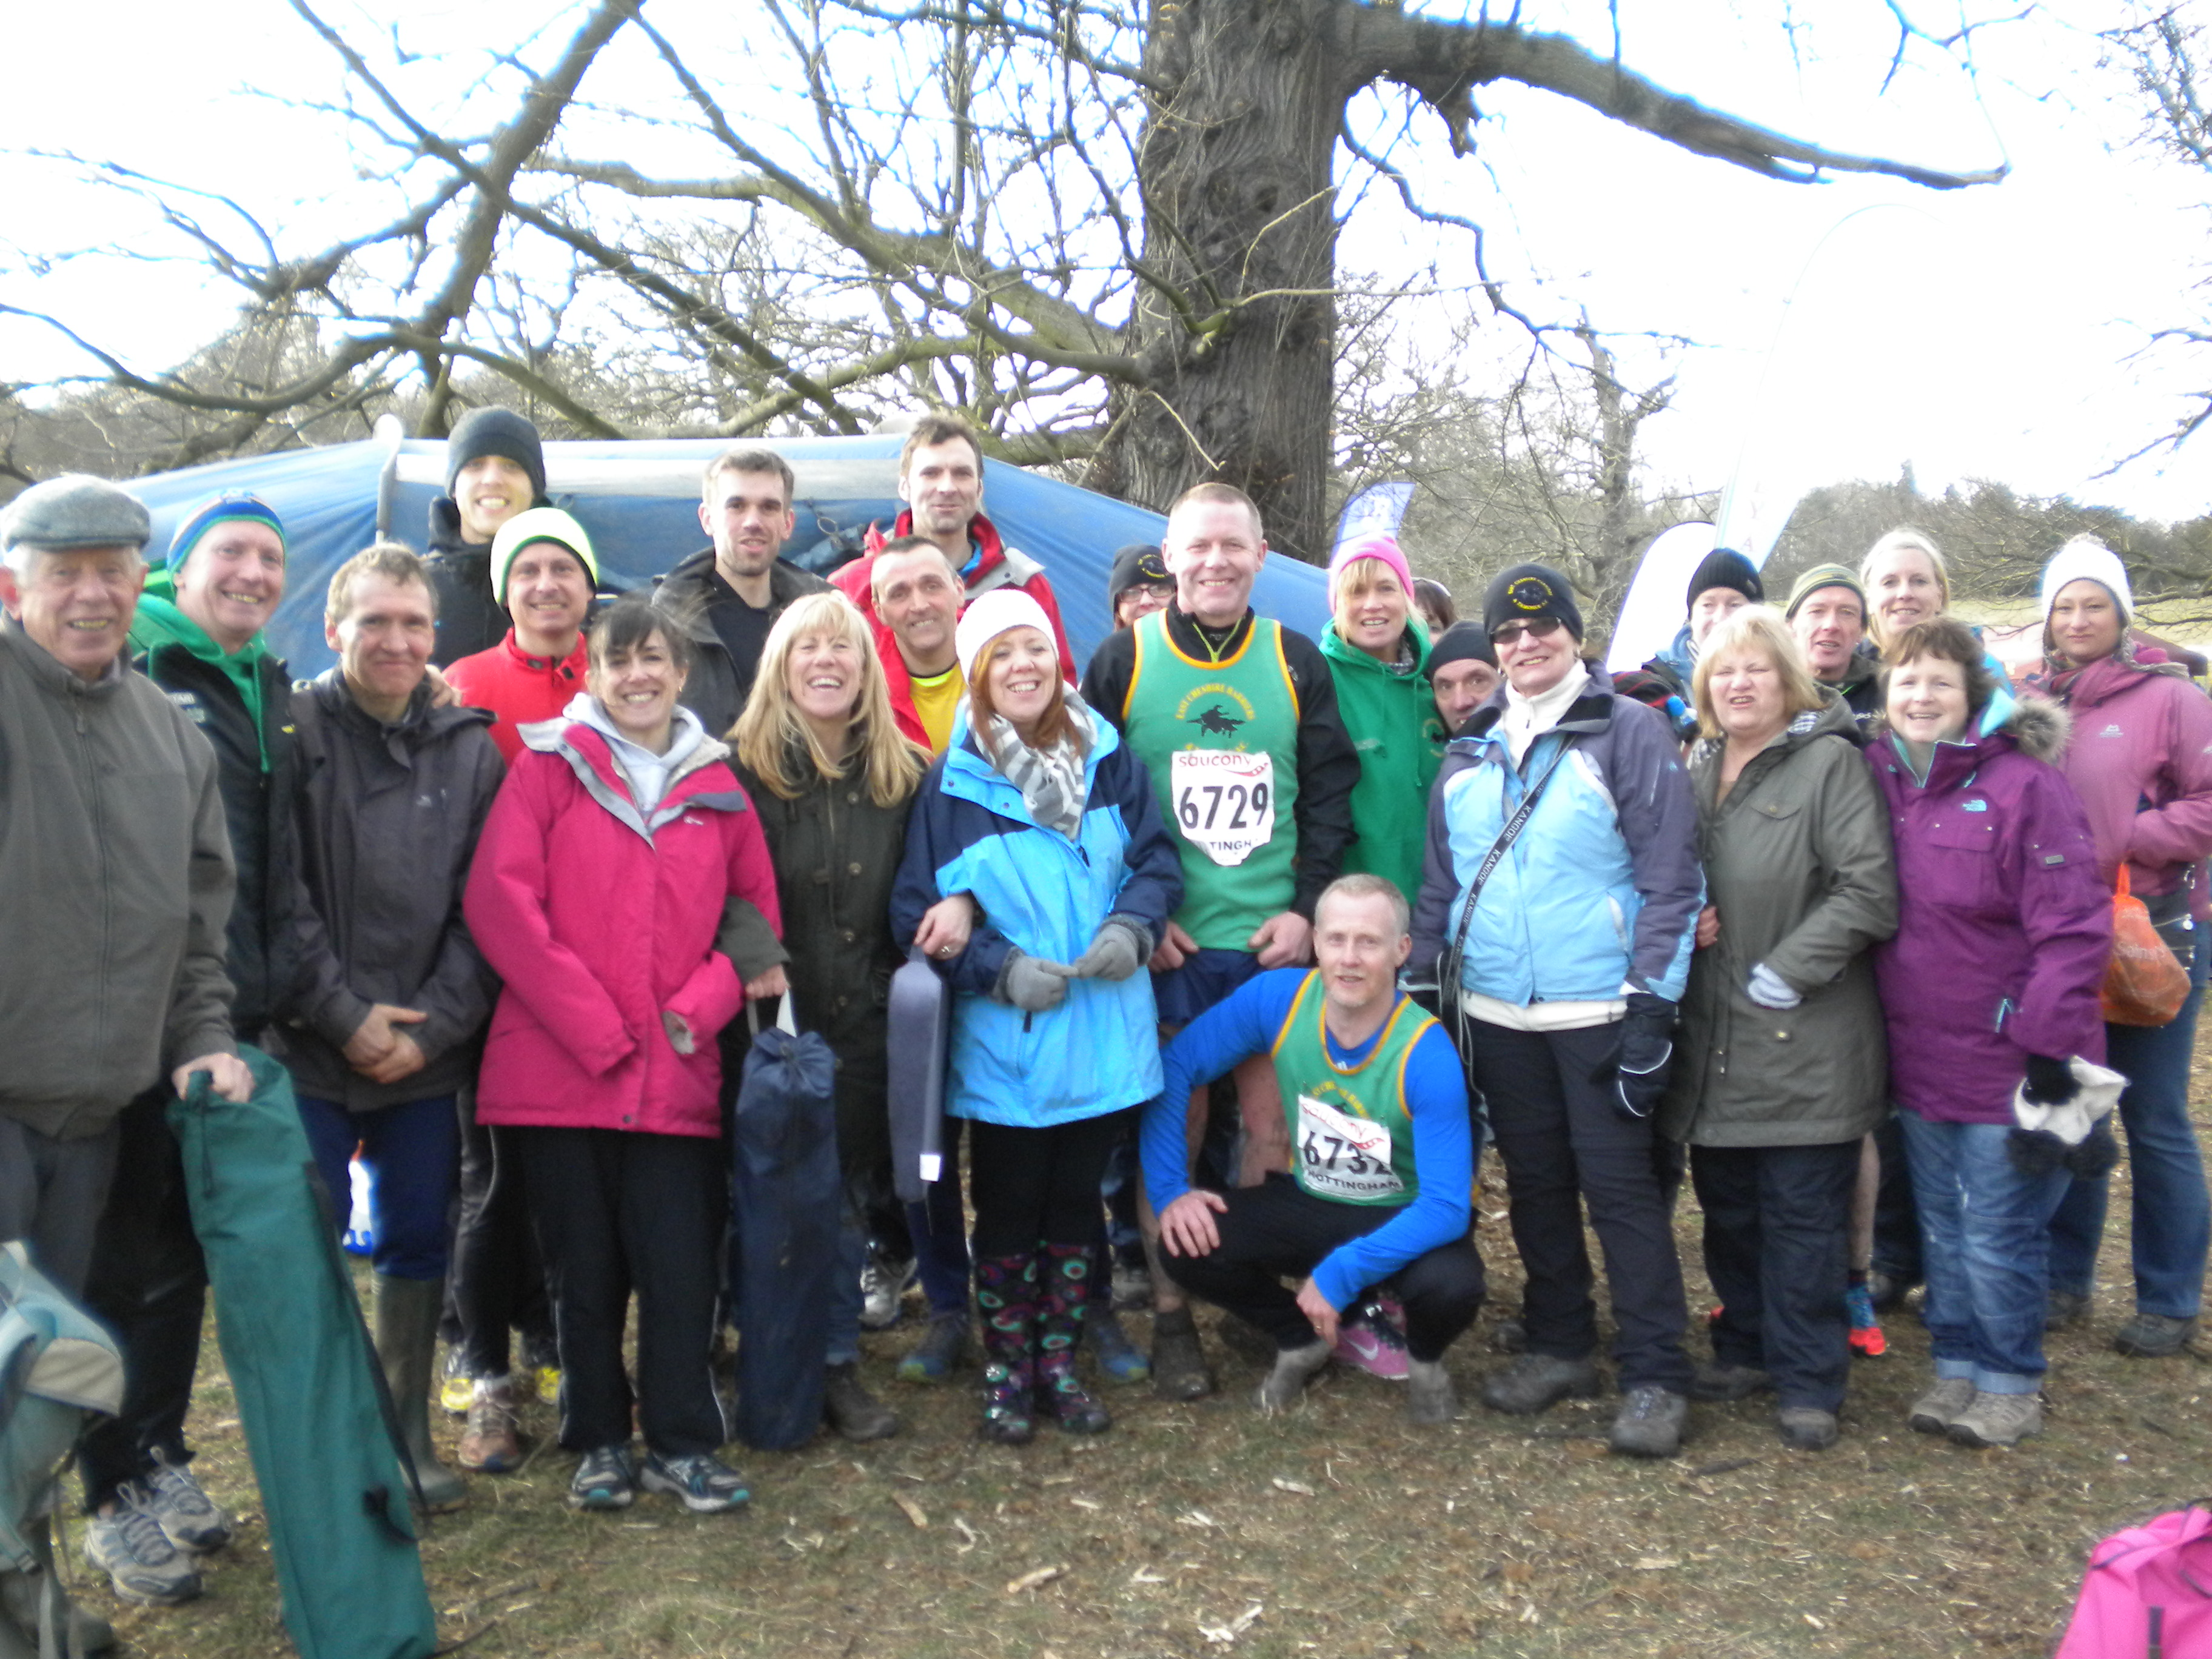 National Cross Country Championships 2014